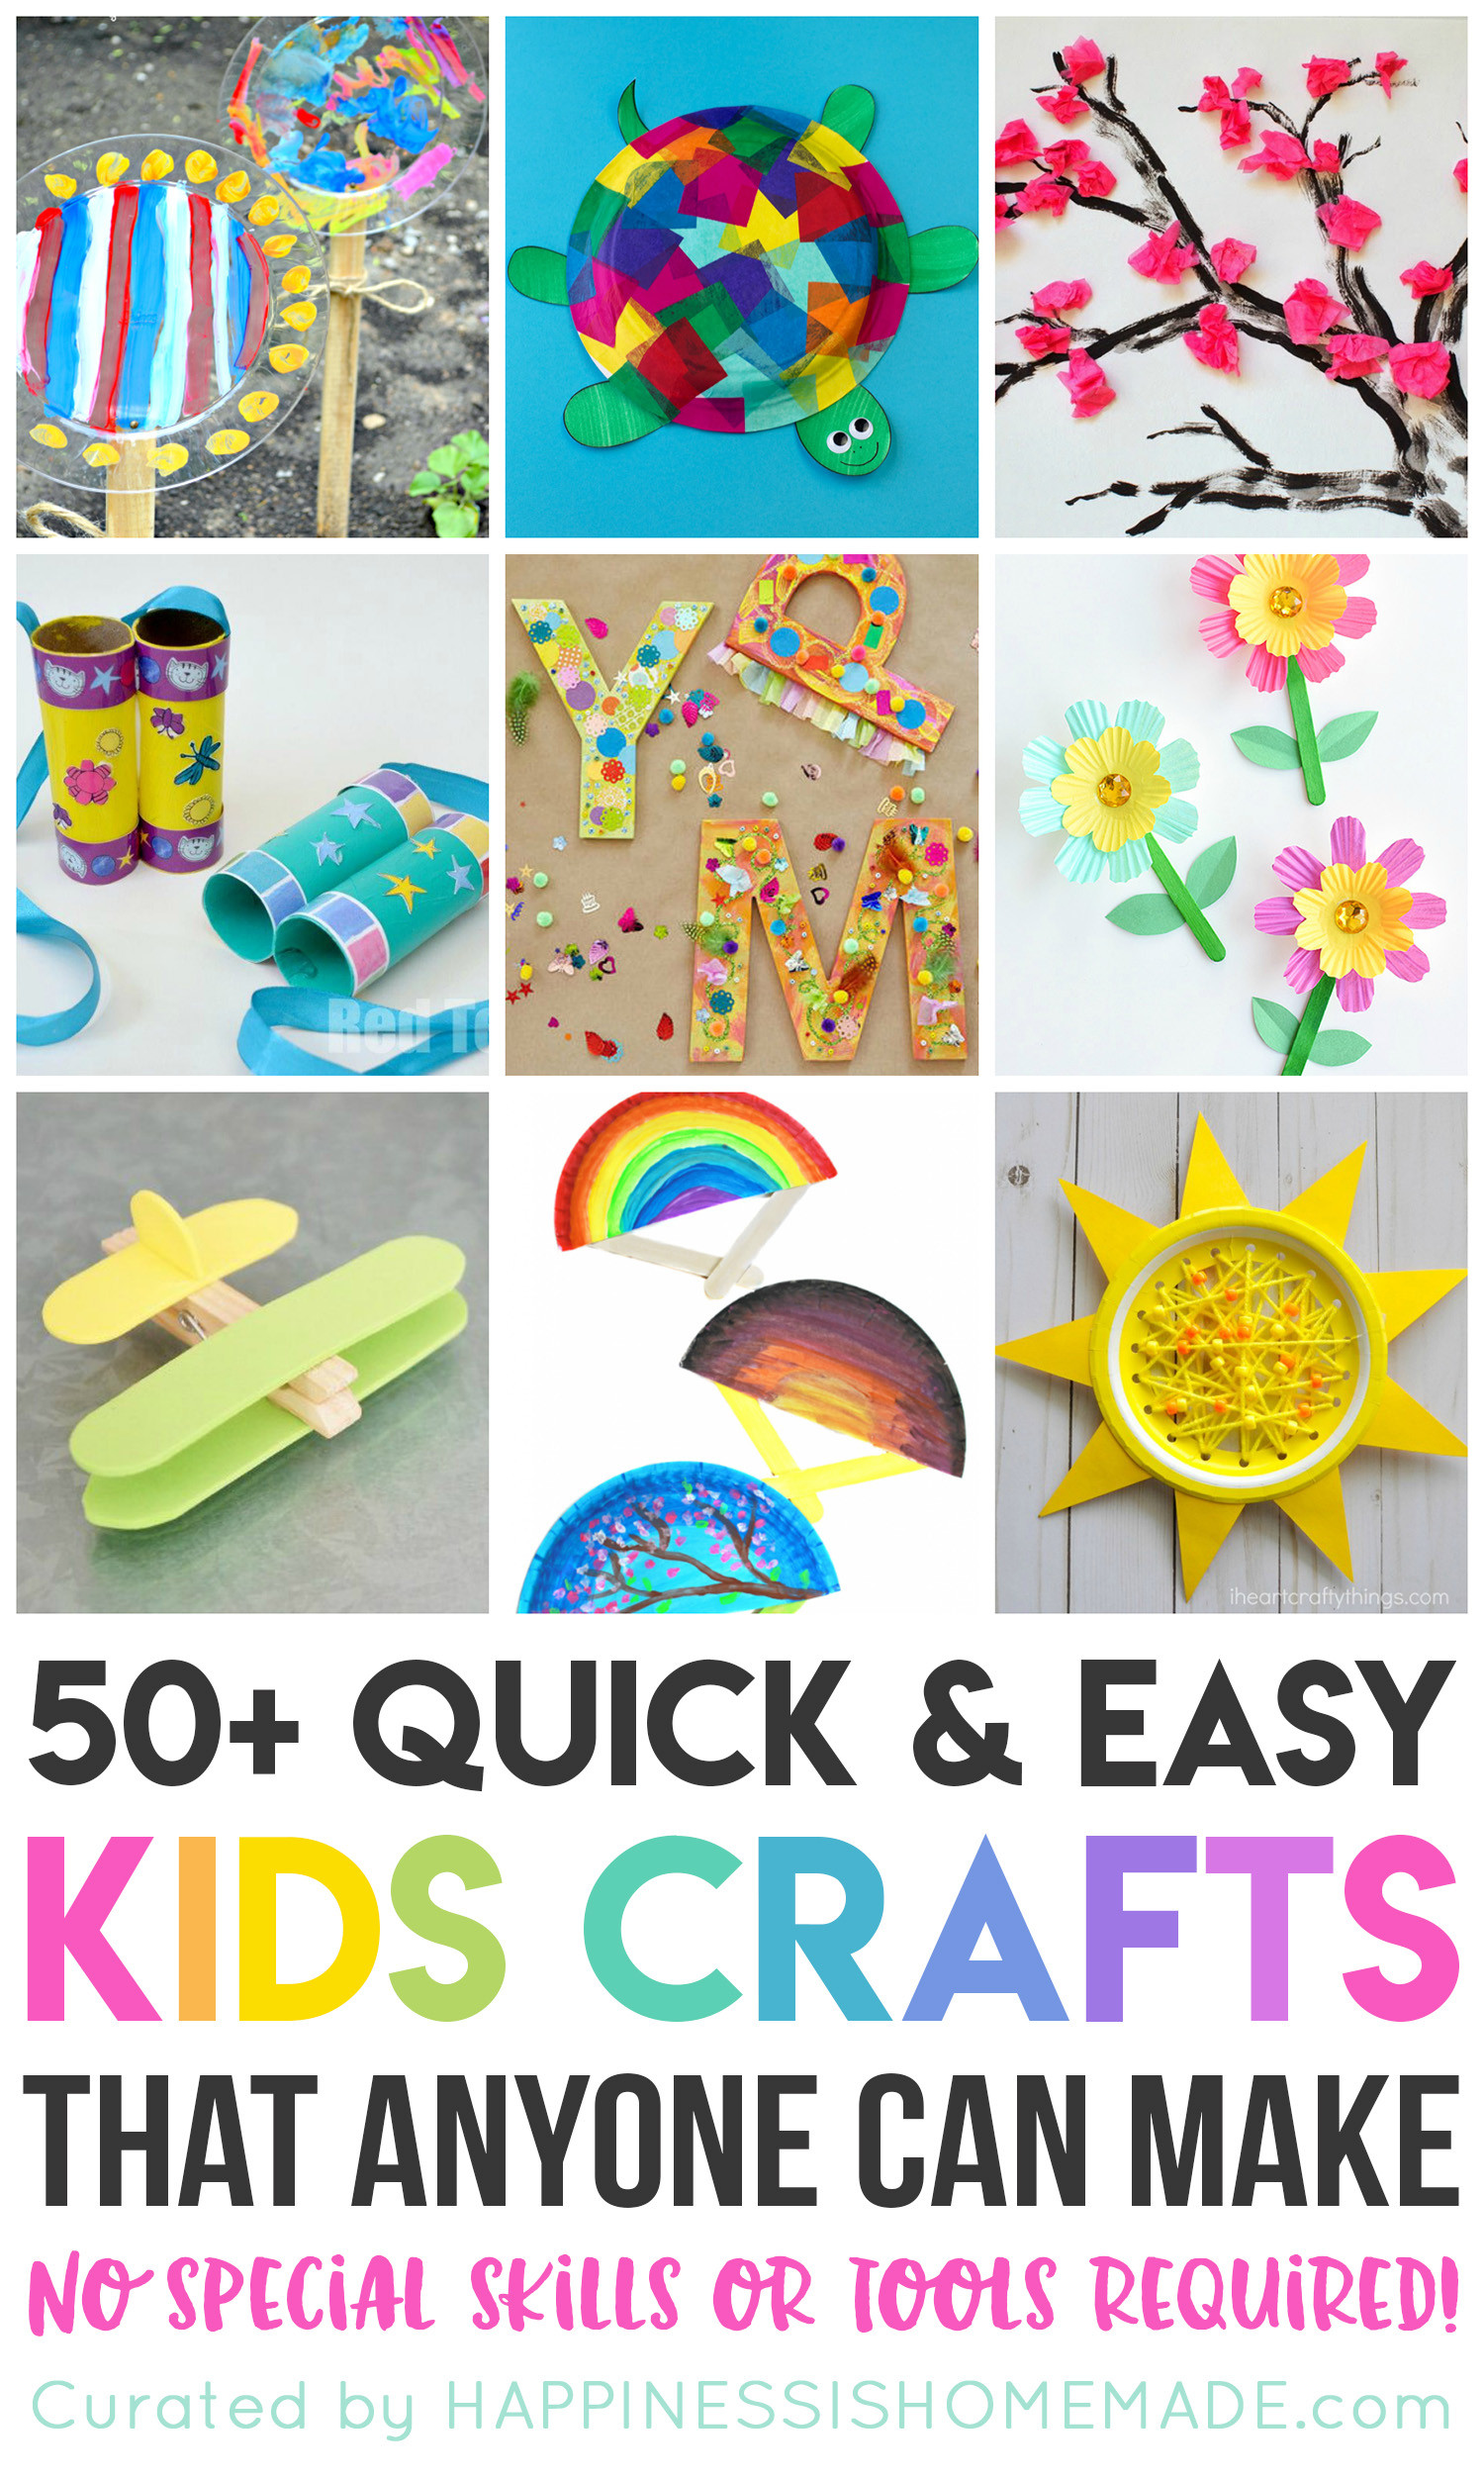 Best ideas about Free Kids Crafts . Save or Pin Quick & Easy Halloween Crafts for Kids Happiness is Homemade Now.